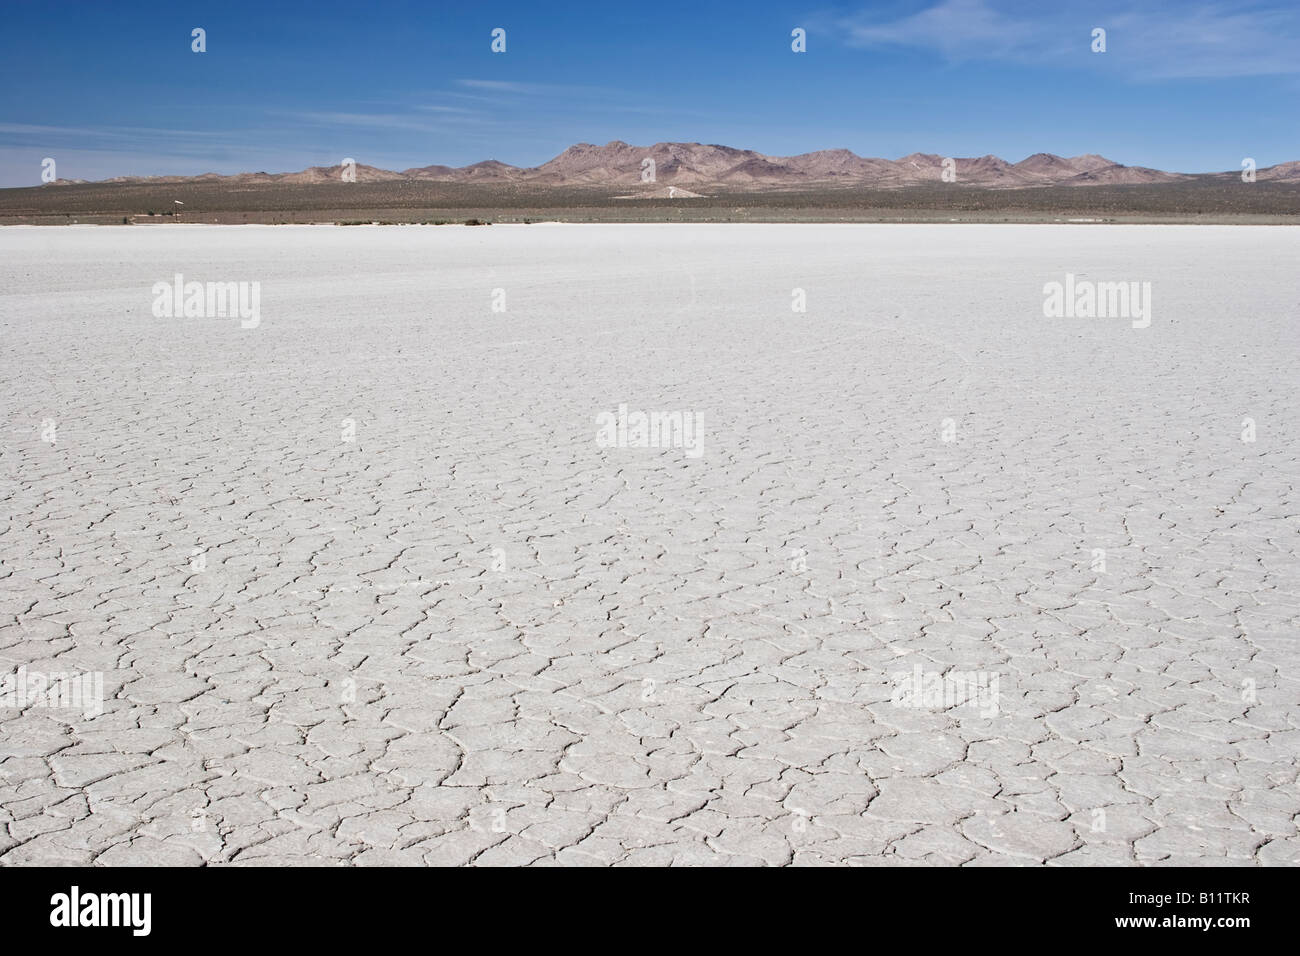 El mirage Dry lake bed with mountains in the distance and a clear blue sky. Stock Photo